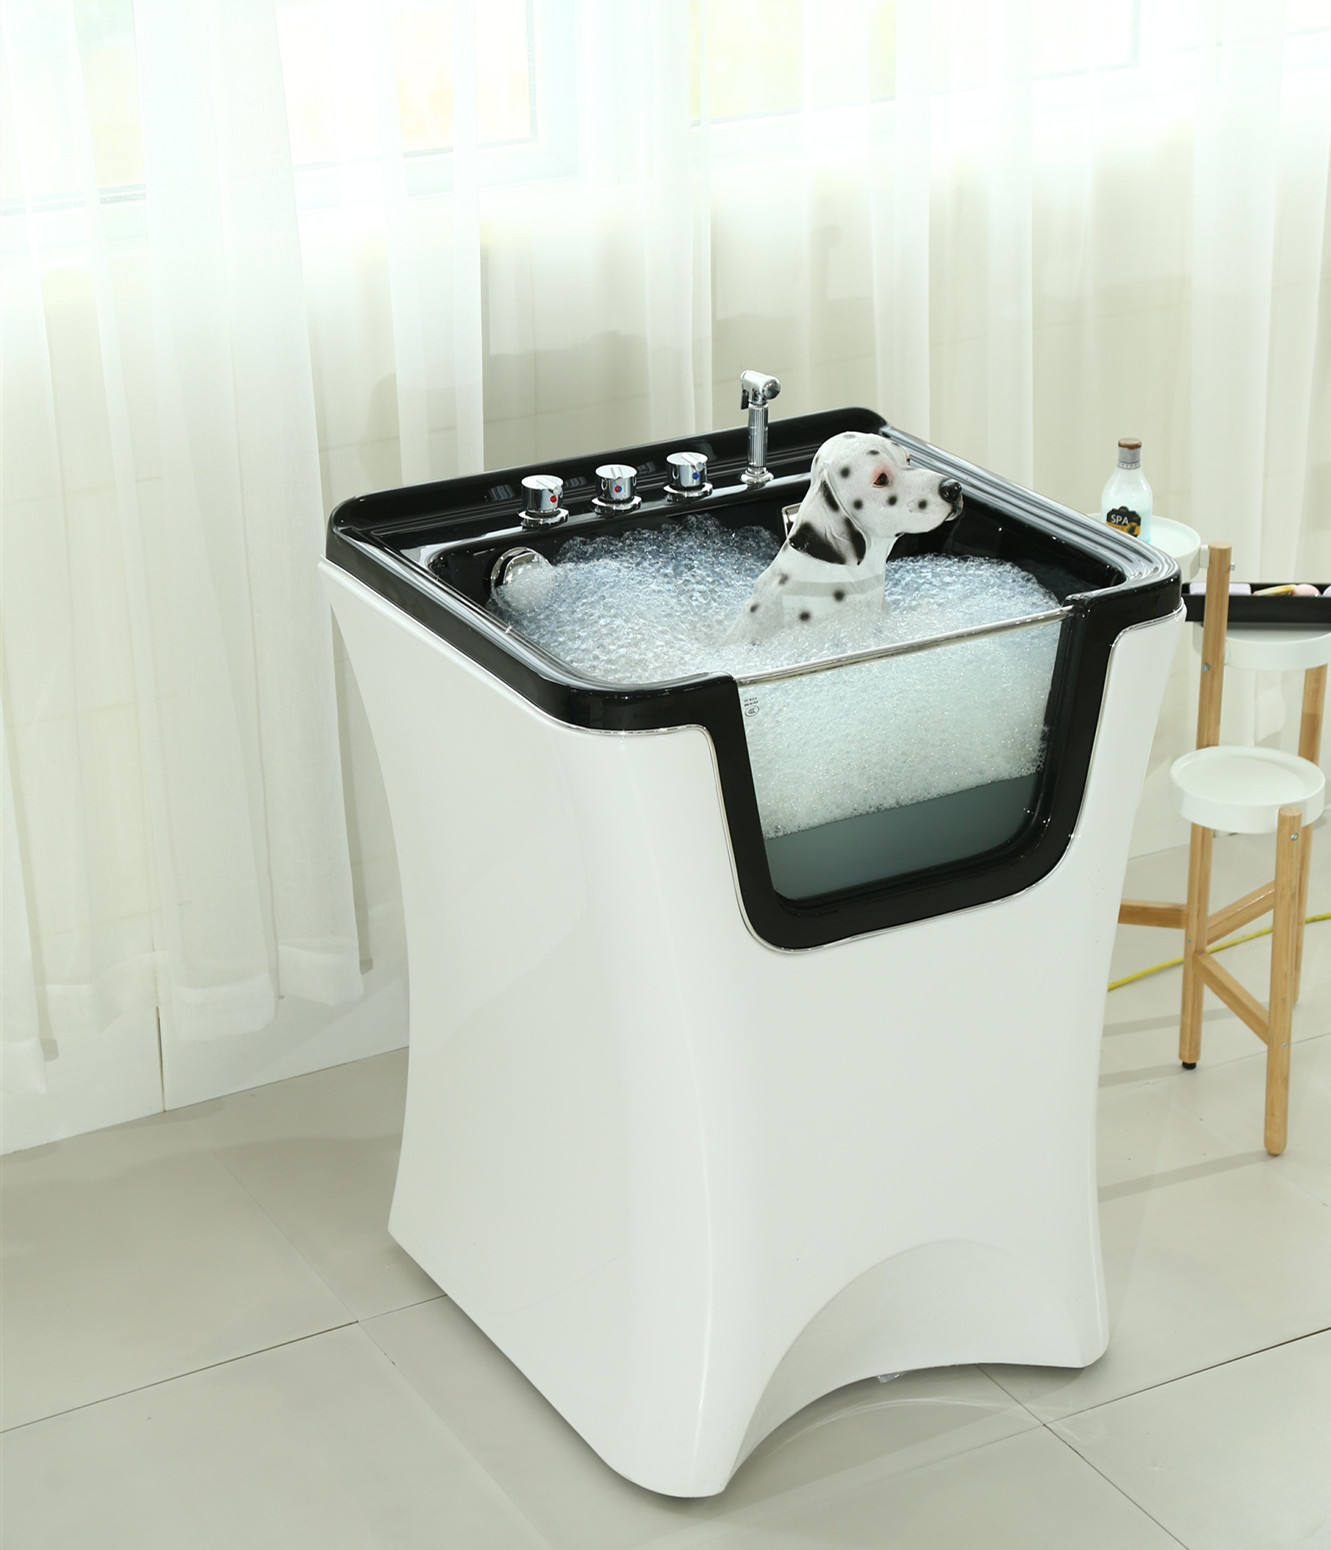 Manufacturing ozone dog hot tub/dog wash machine/dog shower,Bubble,Ozone,Led function